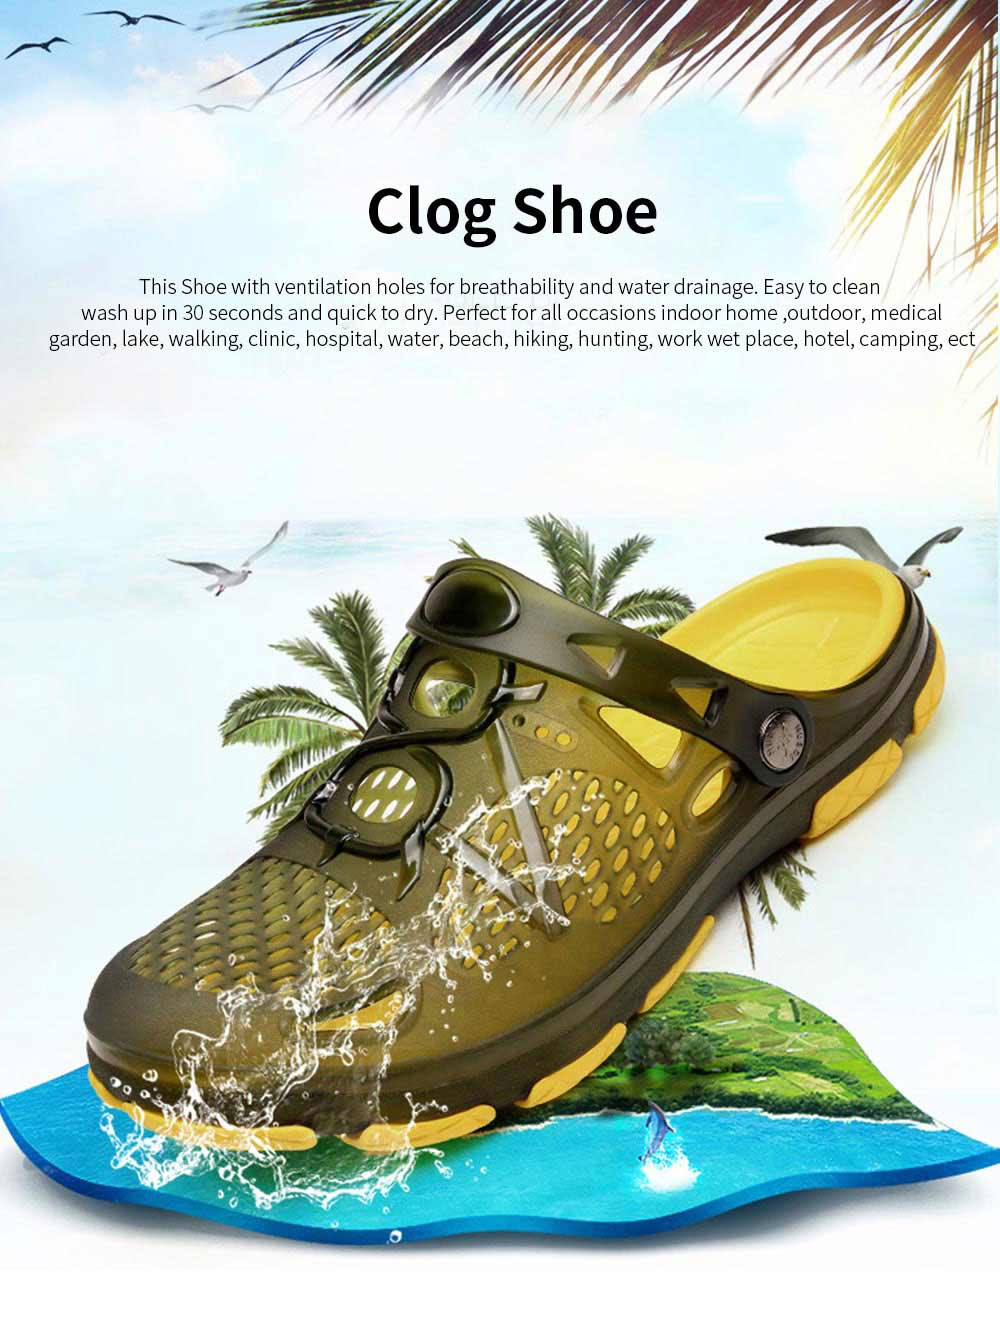 Clog Shoe Comfort Anti-slip Casual Water Shoe Beach Footwear Summer Slippers Sandal for Men Women 0